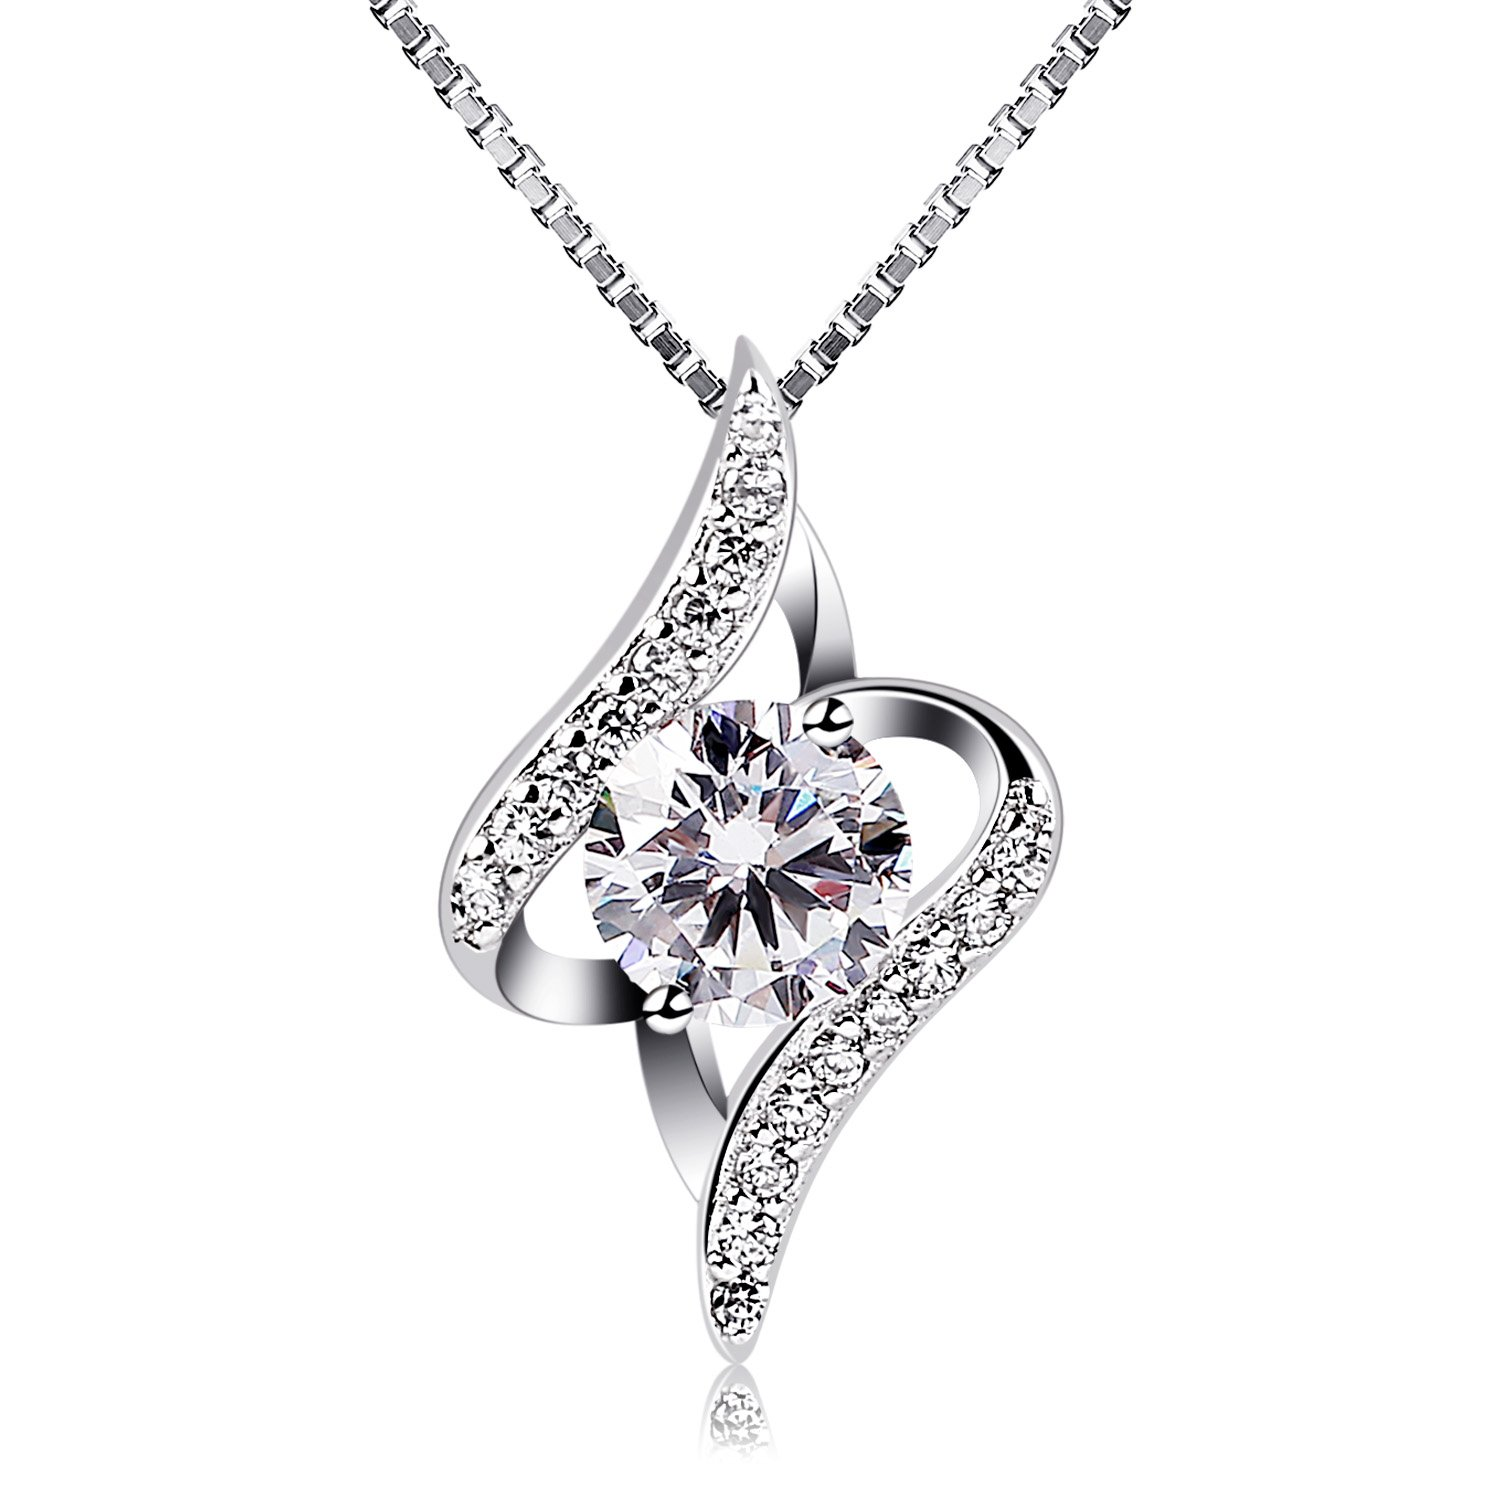 B.Catcher Jewelry for Women Twist Pendant Necklace 925 Sterling Silver Cubic Zirconia with 45 cm Chain